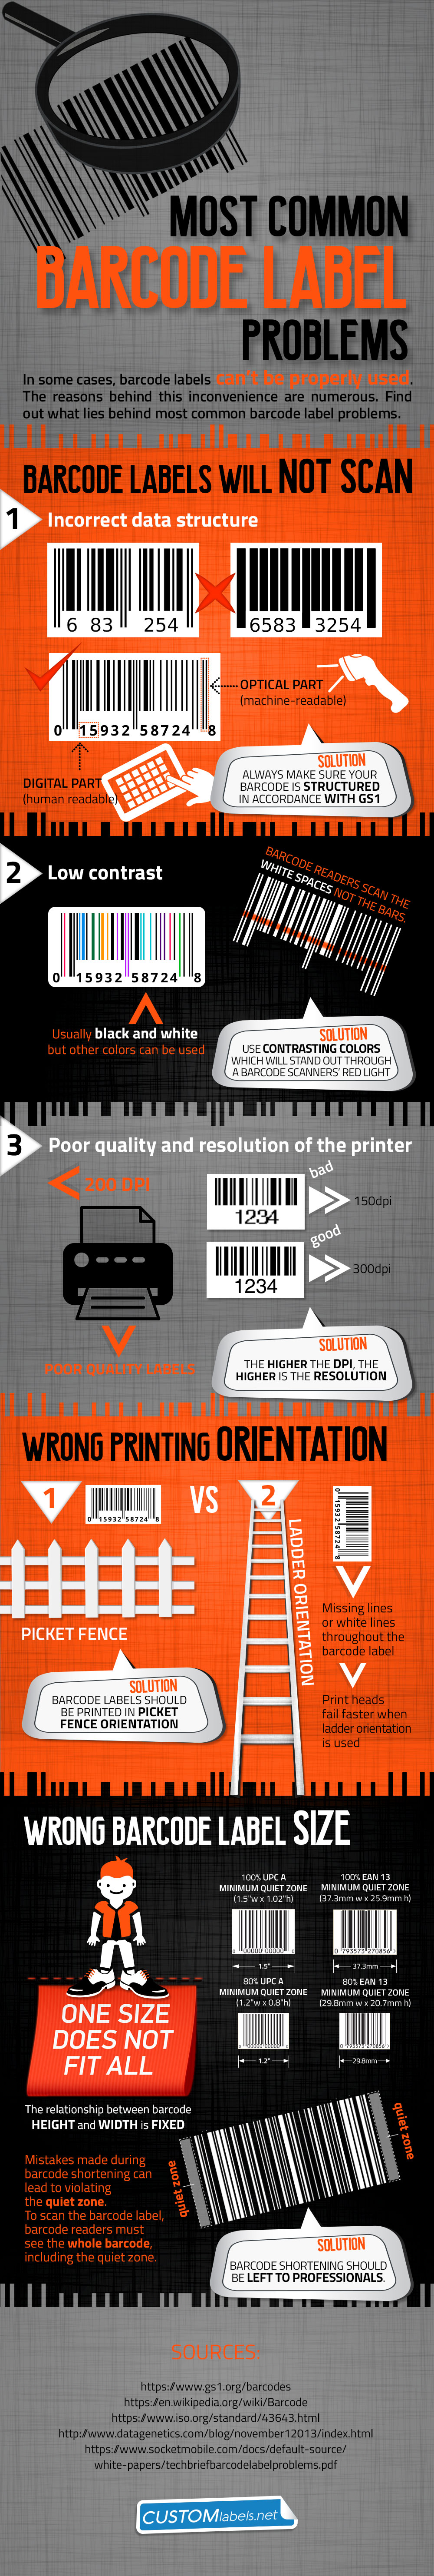 infographic-common-barcode-label-problems